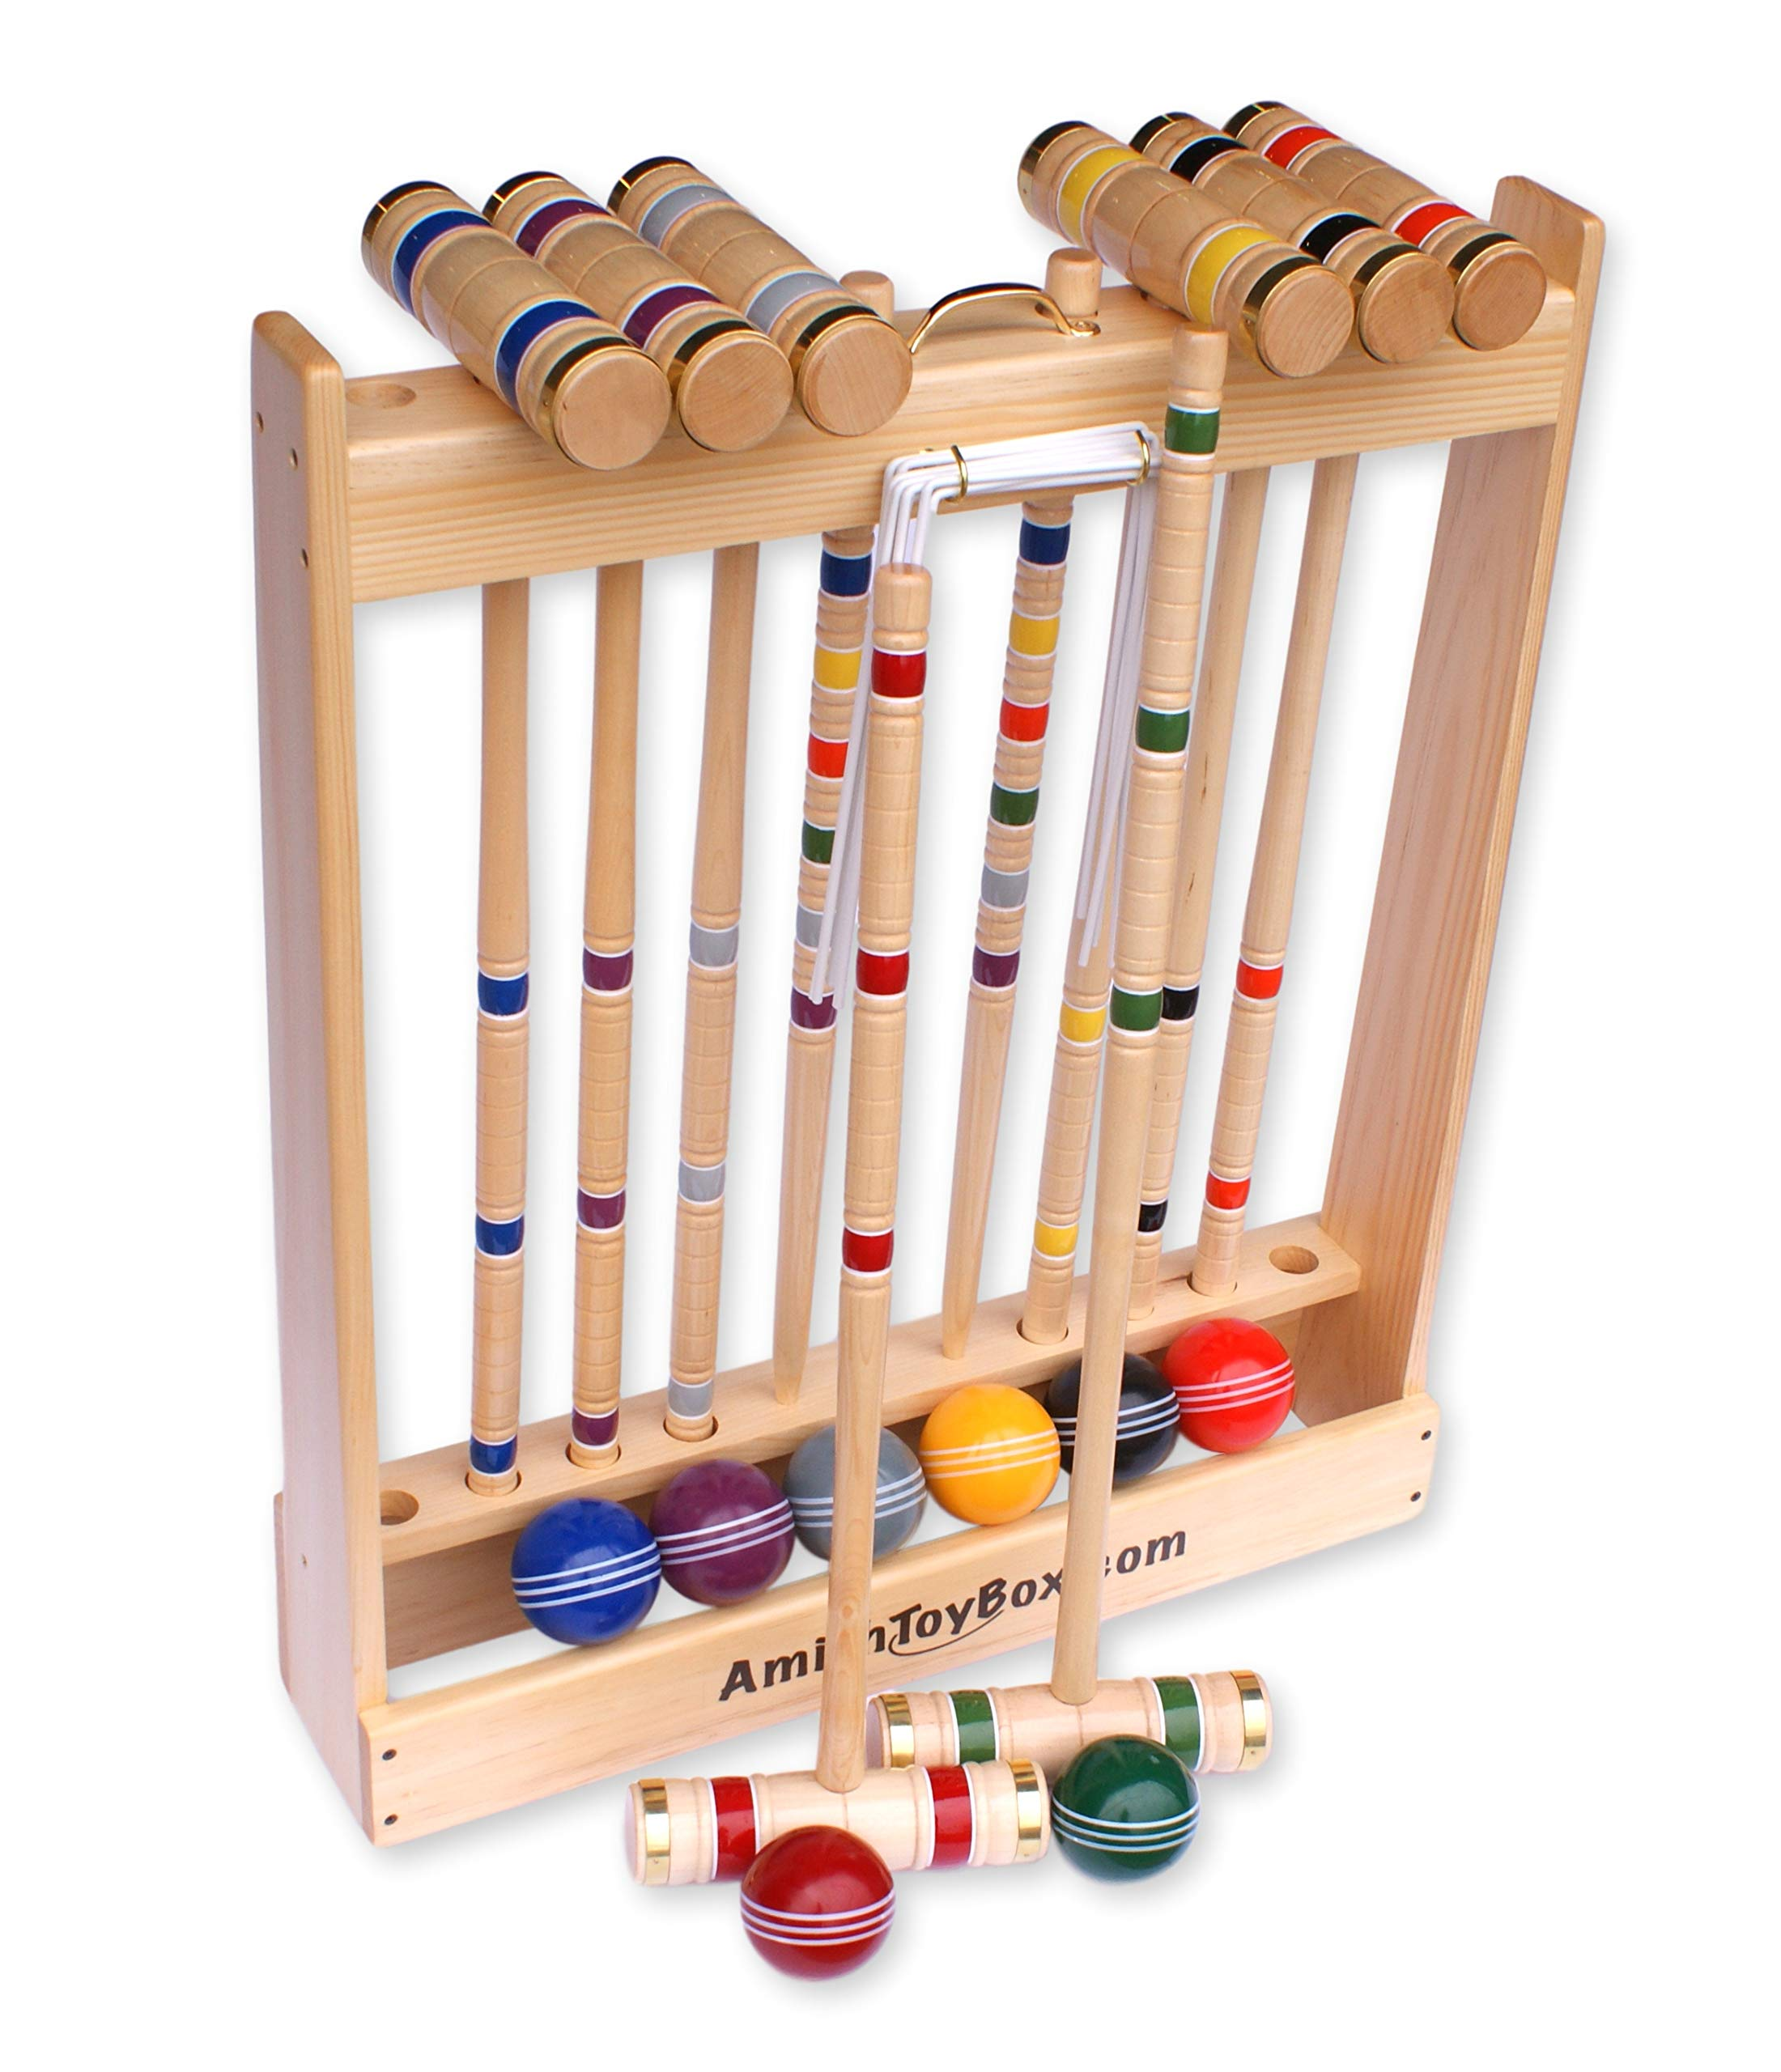 Amish-Crafted Deluxe 8-Player Croquet Game Set, Maple Hardwood (Four 28'' Handles/Four 32'' Handles) by AmishToyBox.com